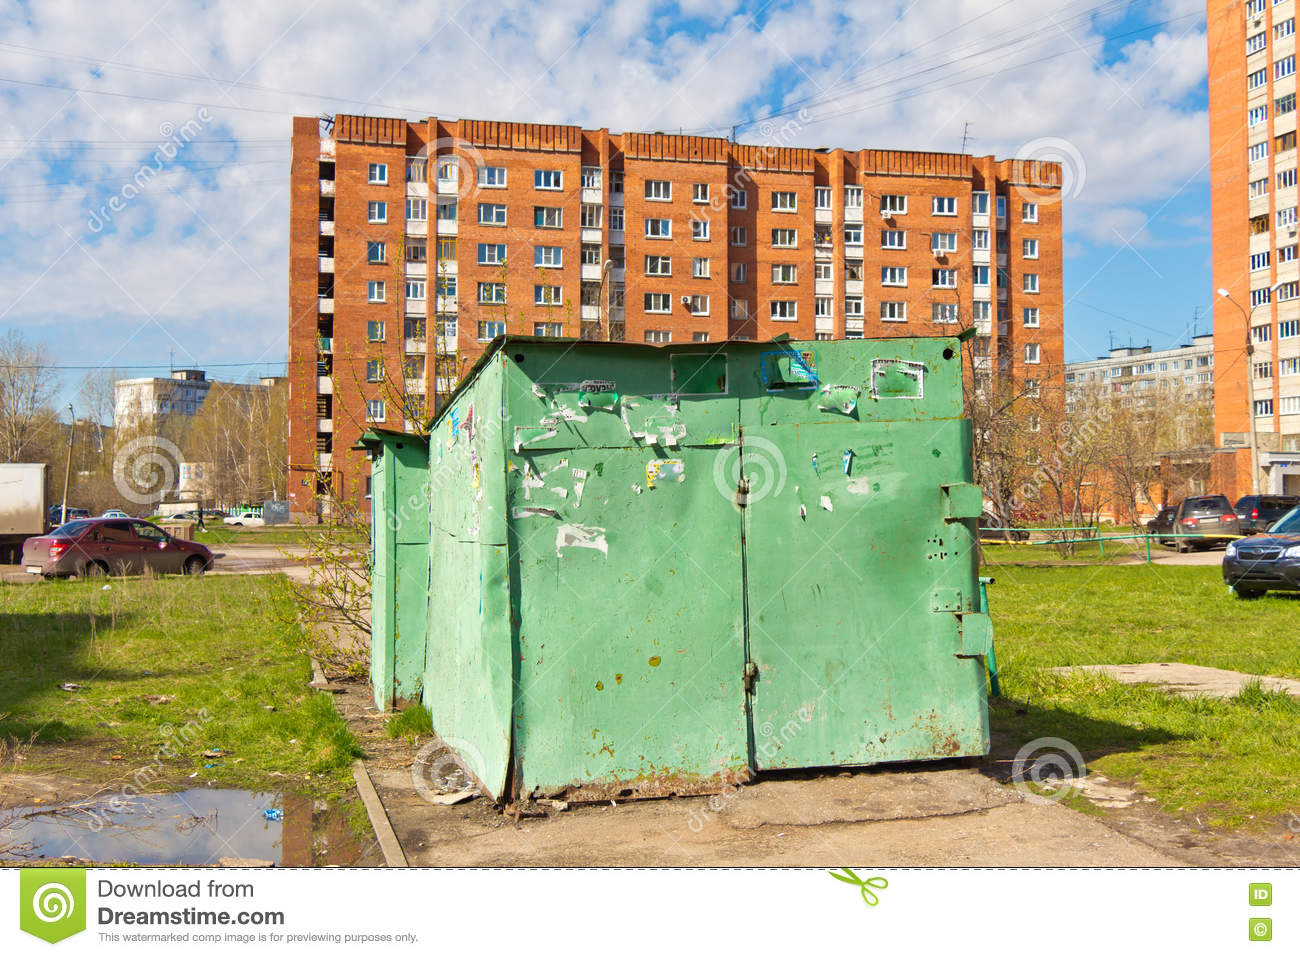 Green Iron Shed Stands On The Sidewalk Stock Photo - Image